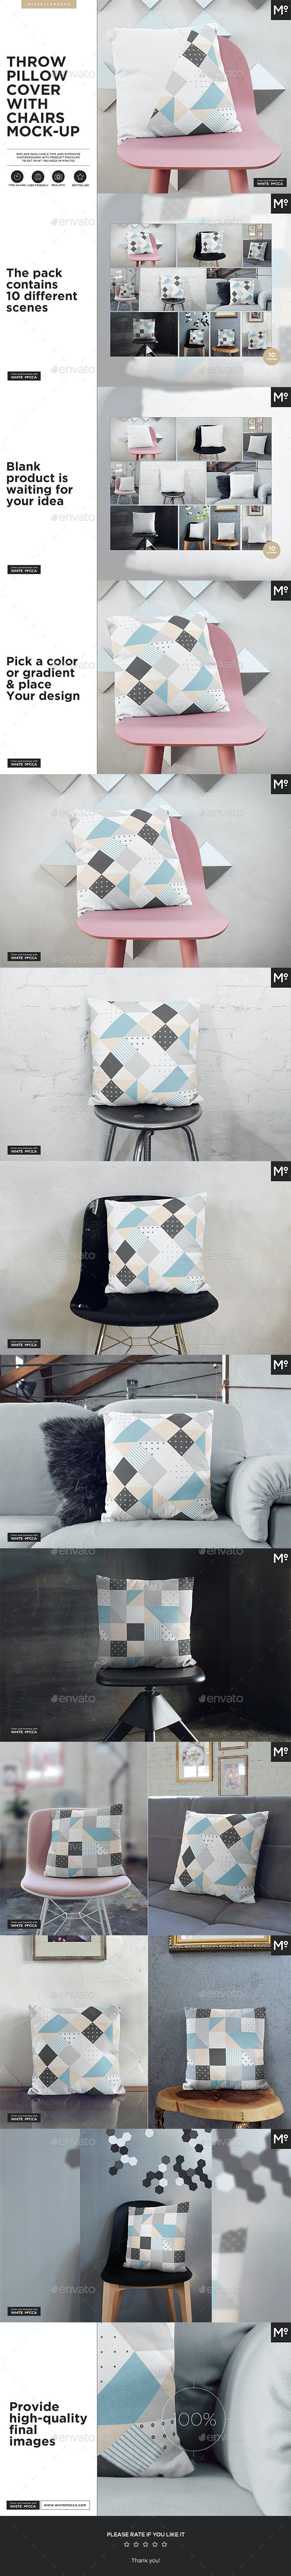 The Throw Pillow With Chairs Mock-up - Miscellaneous Product Mock-Ups